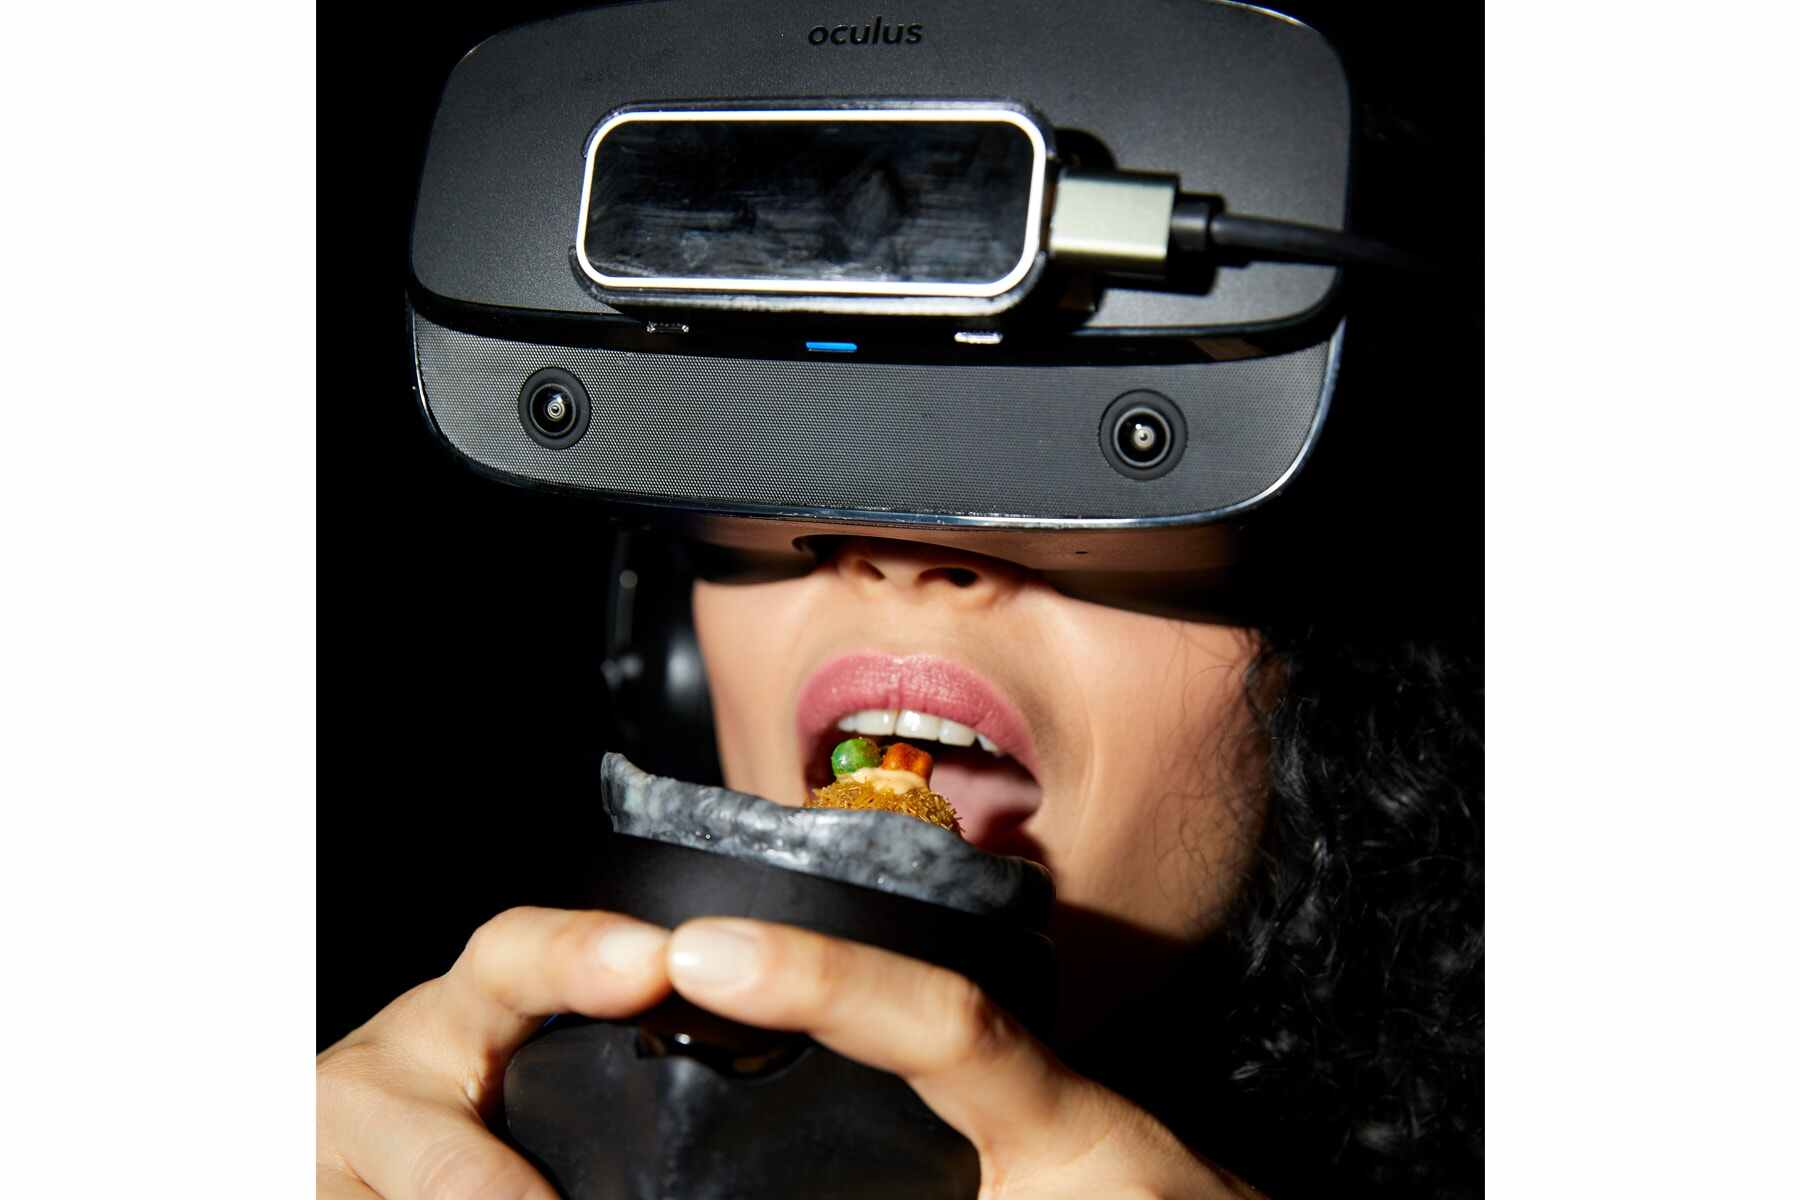 H/O Aerobanquets virtual reality dining experience with Facebook Oculus VR mask